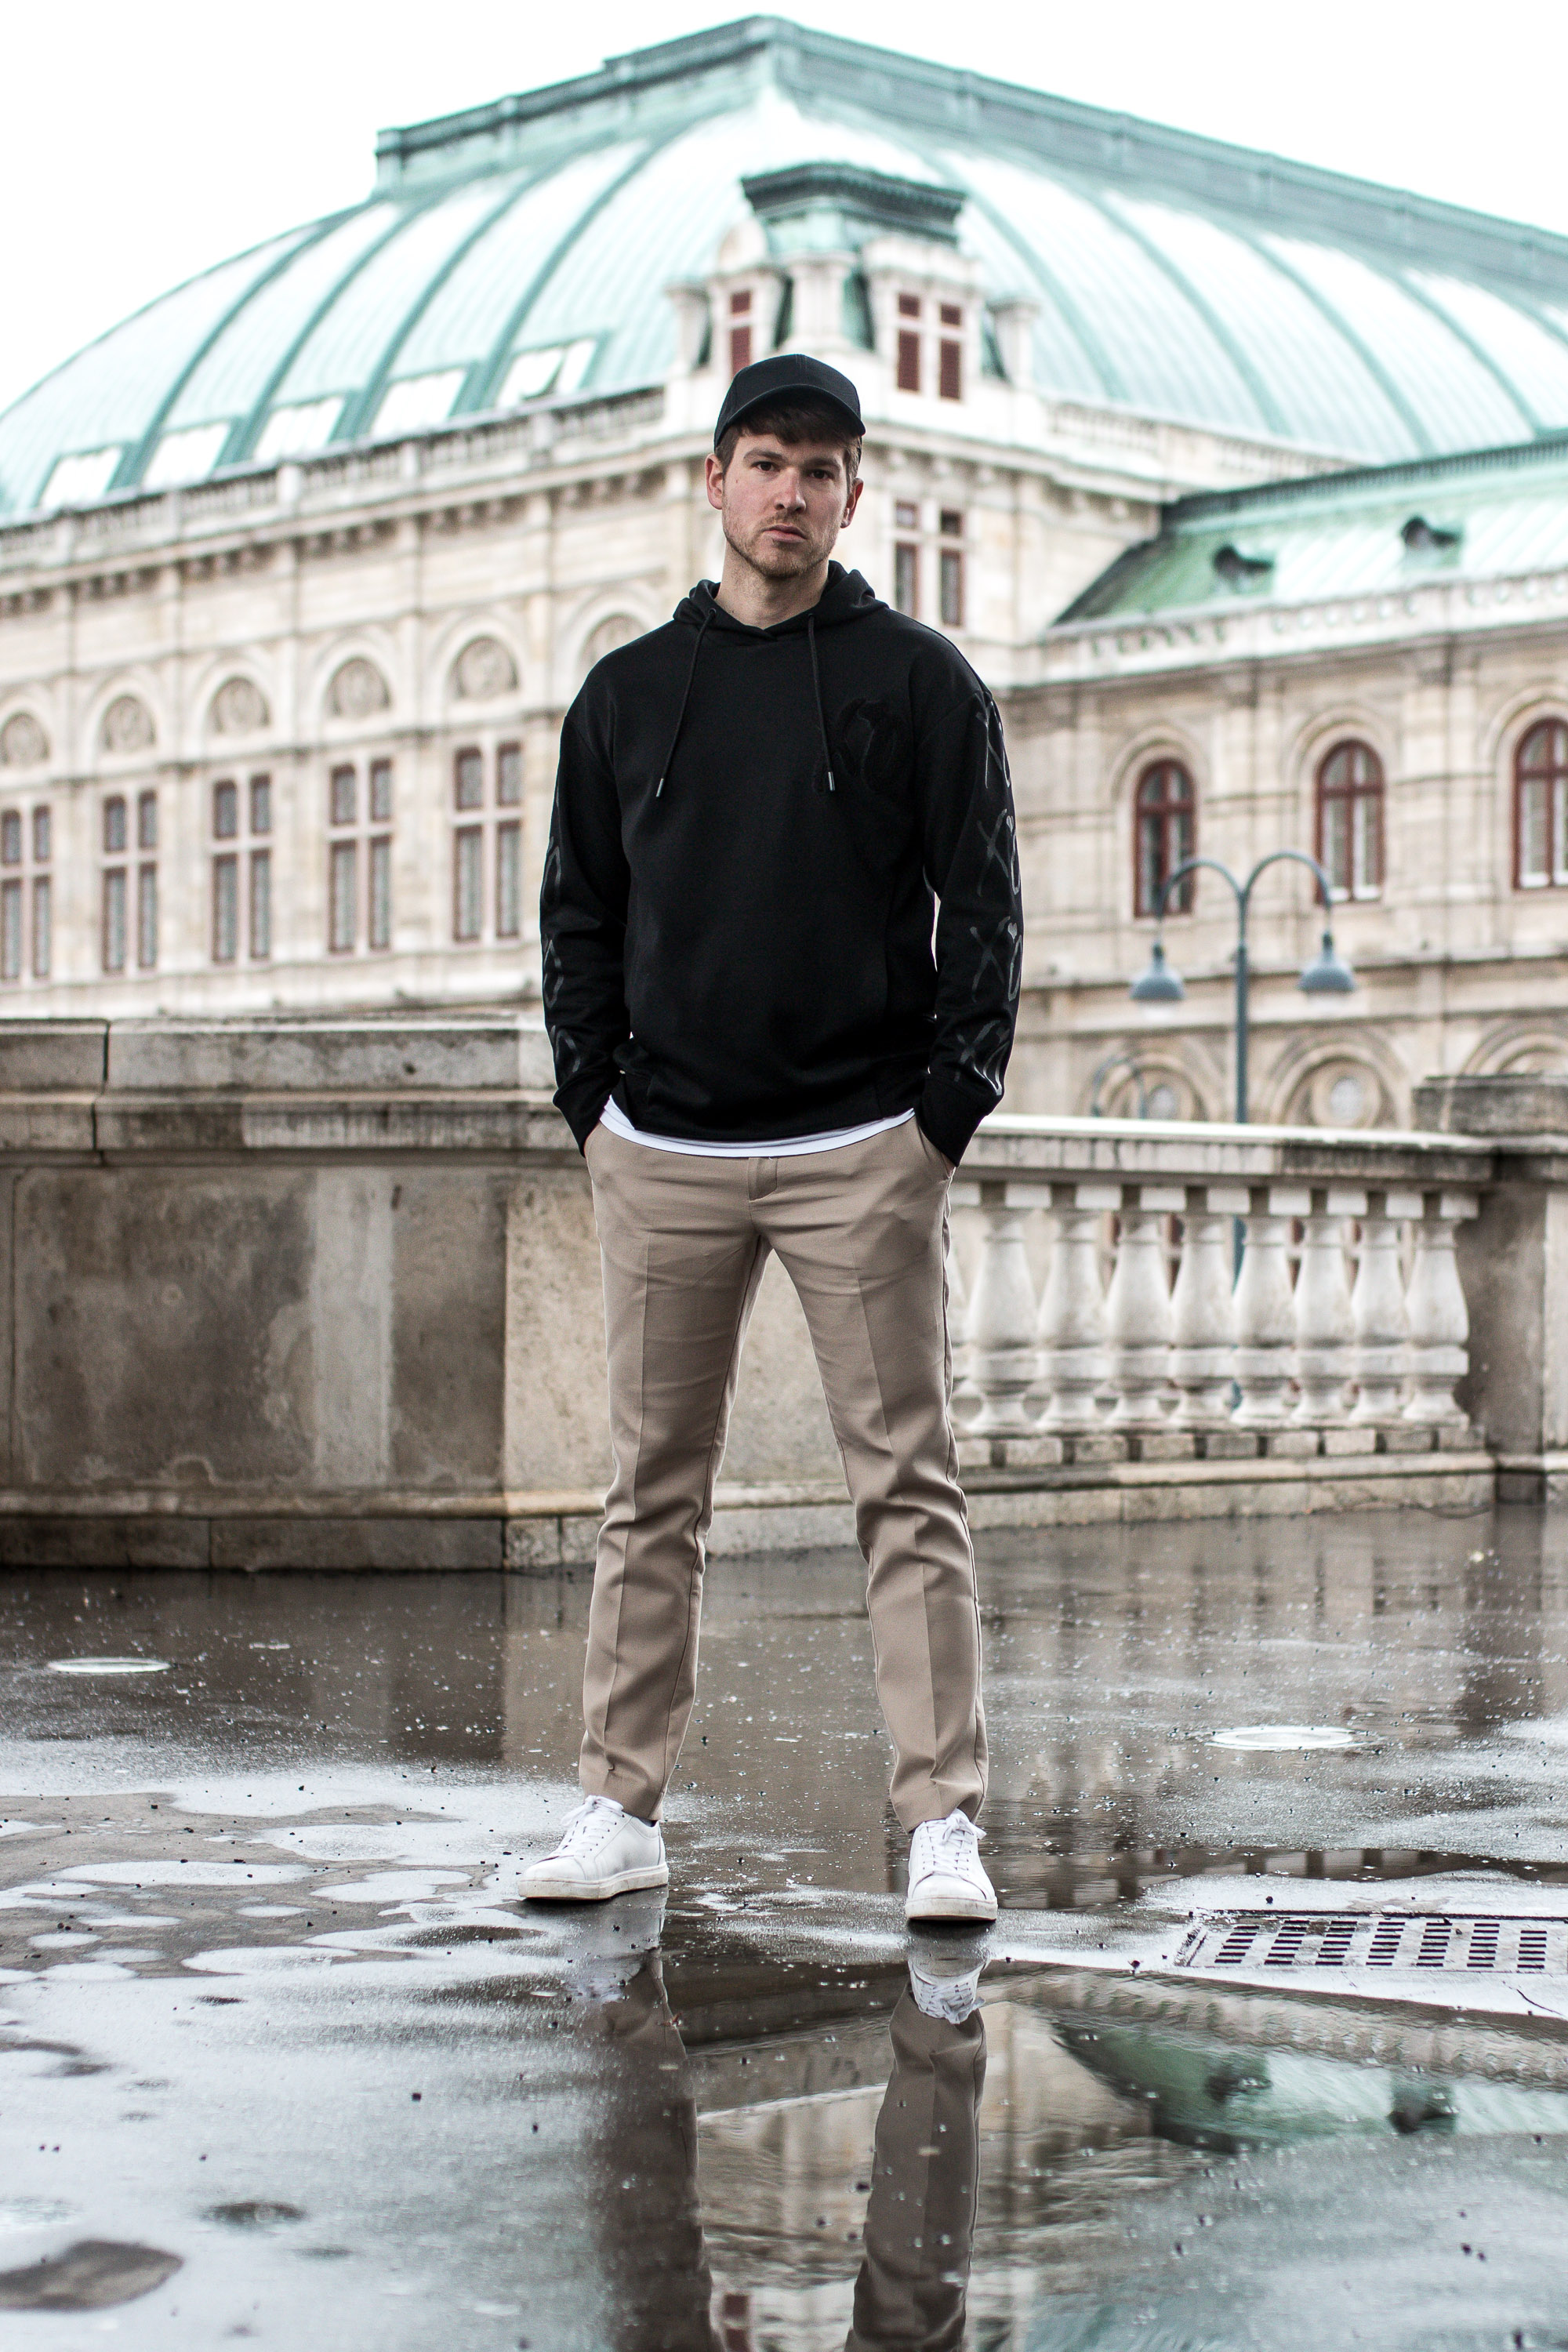 H&M Spring Icons by The Weeknd - Meanwhile in Awesometown Austrian Mens Fashion Blogger - Wiener Blogger 2